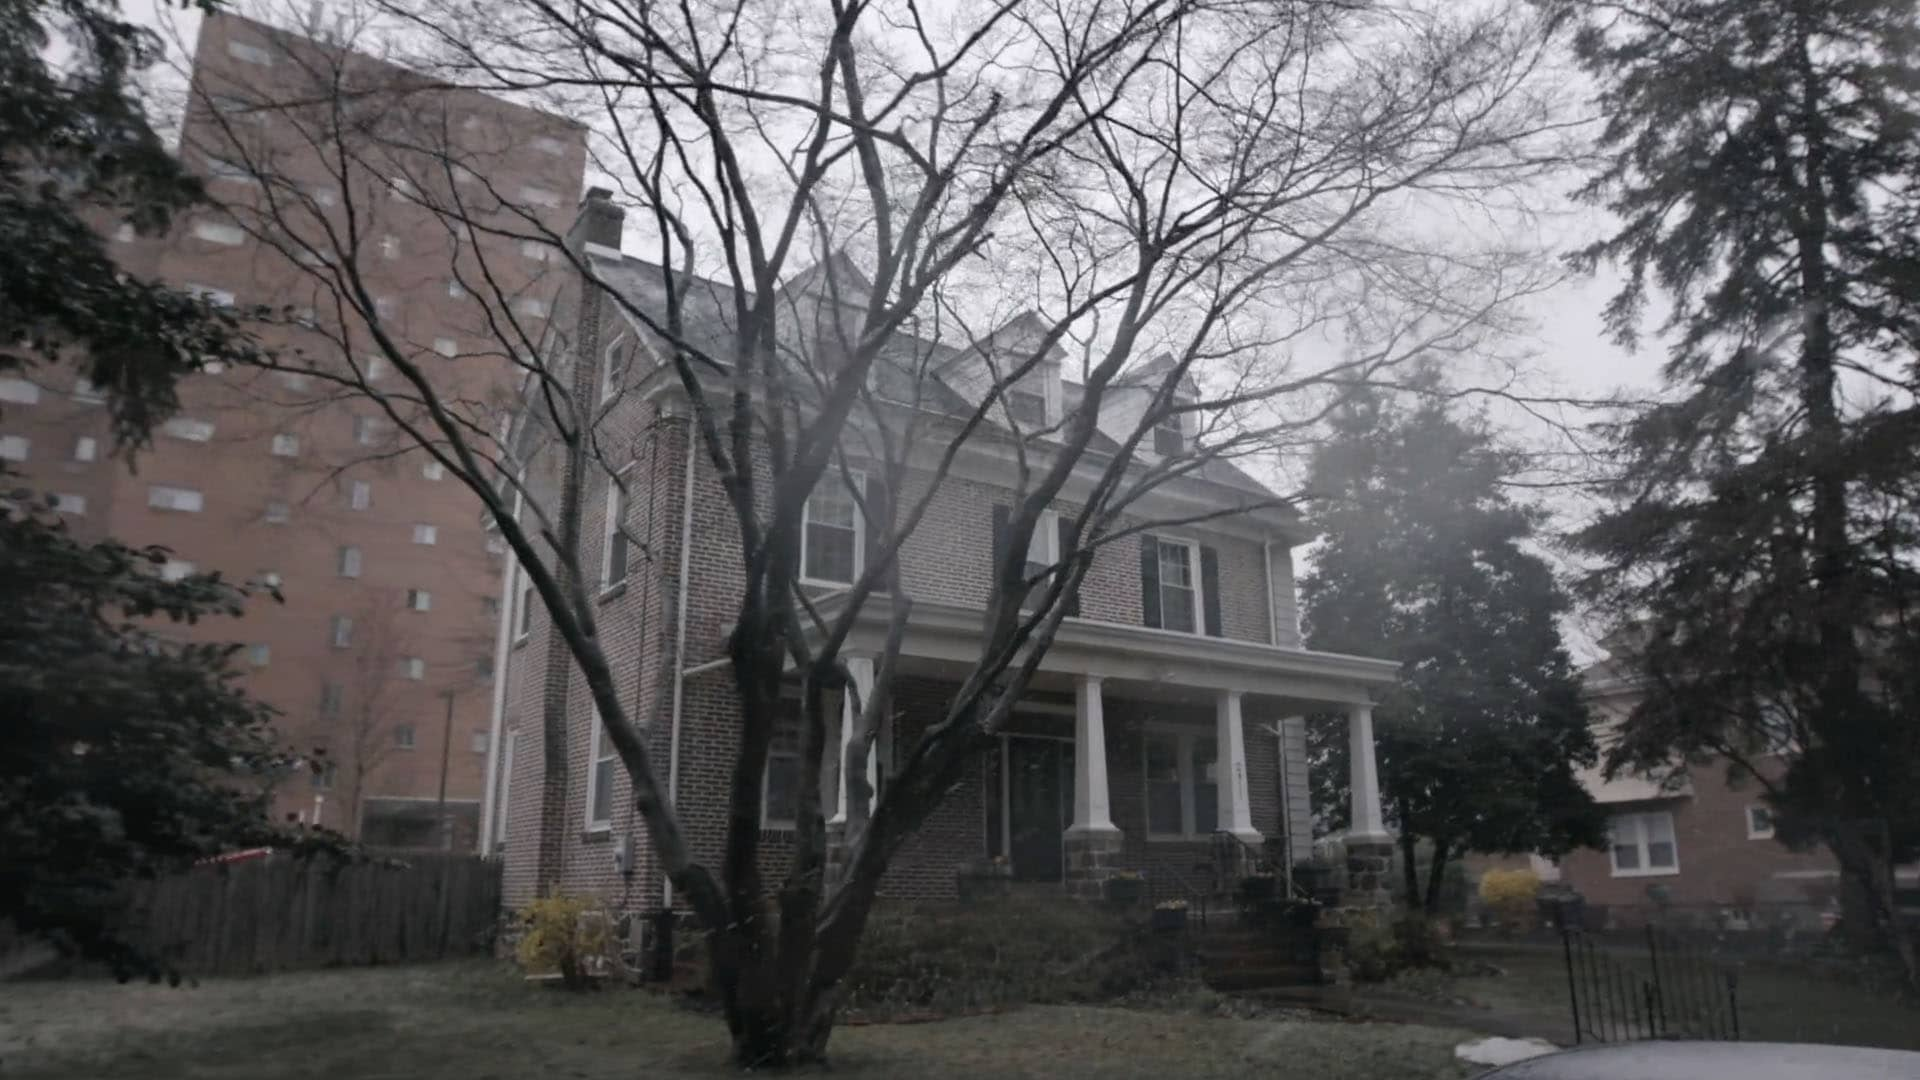 Foggy view of a two-story house, with overcast skies